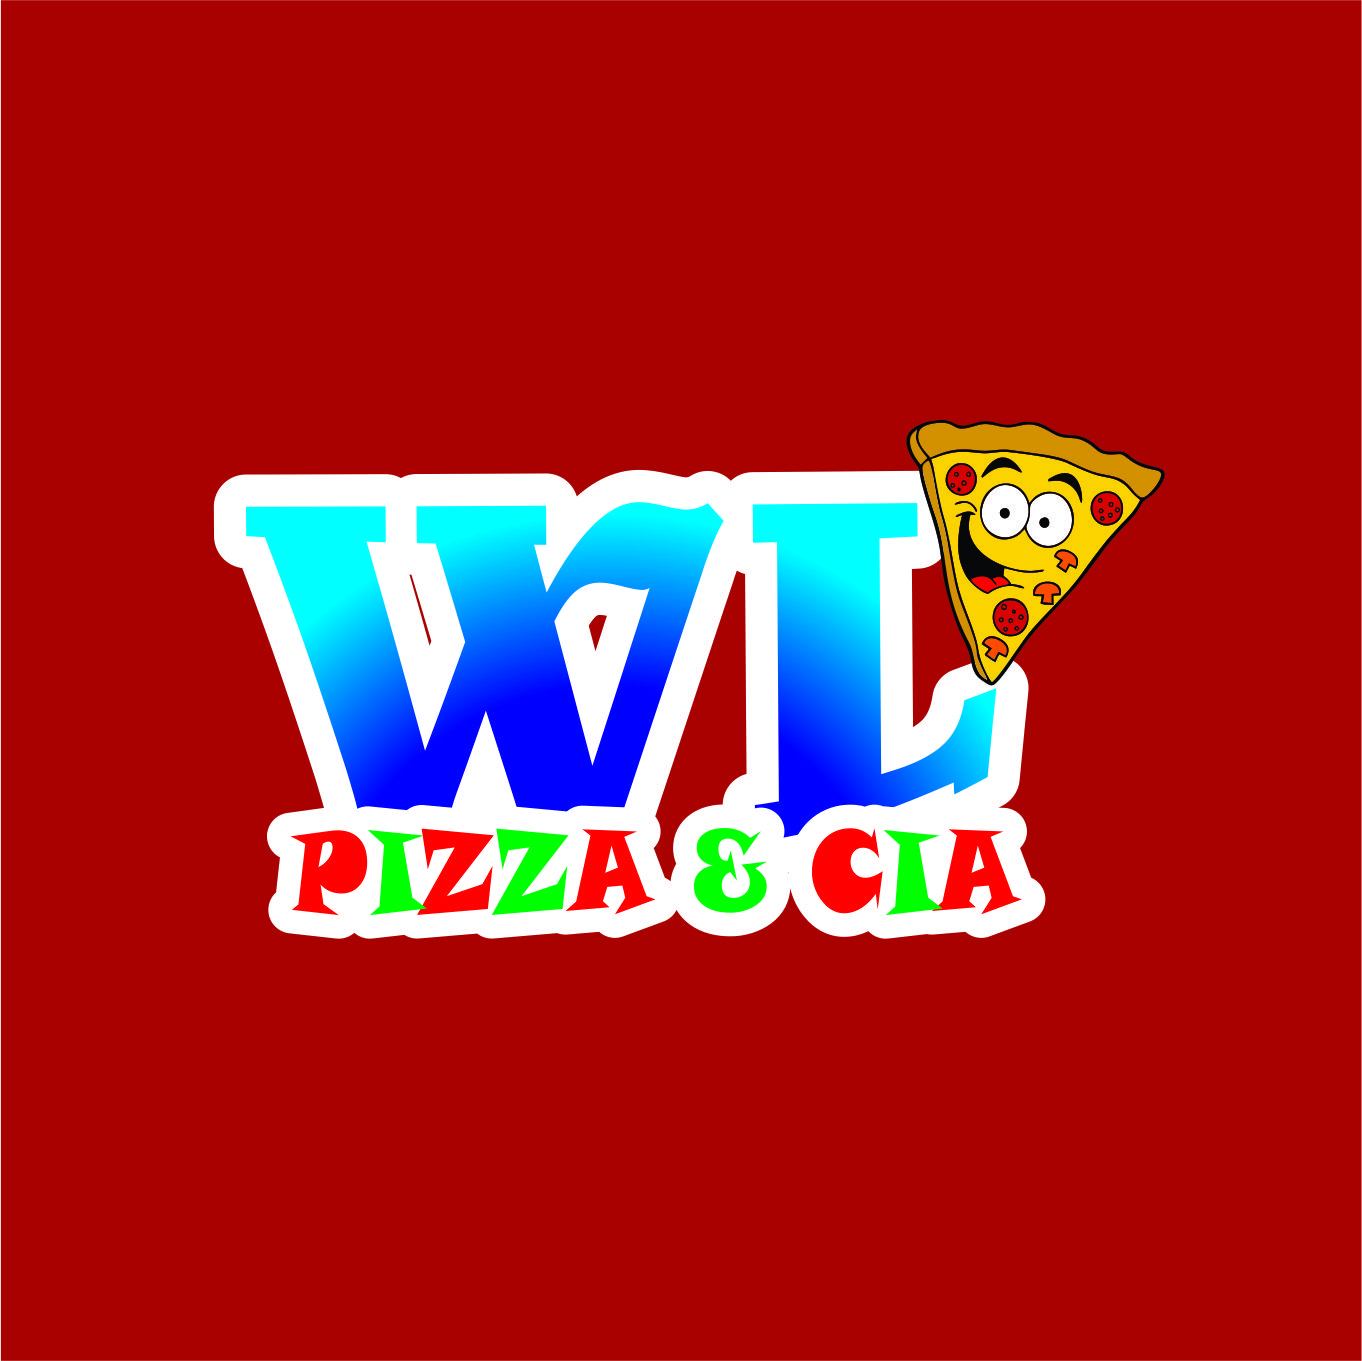 Logo-Pizzaria - WL Pizza e Cia